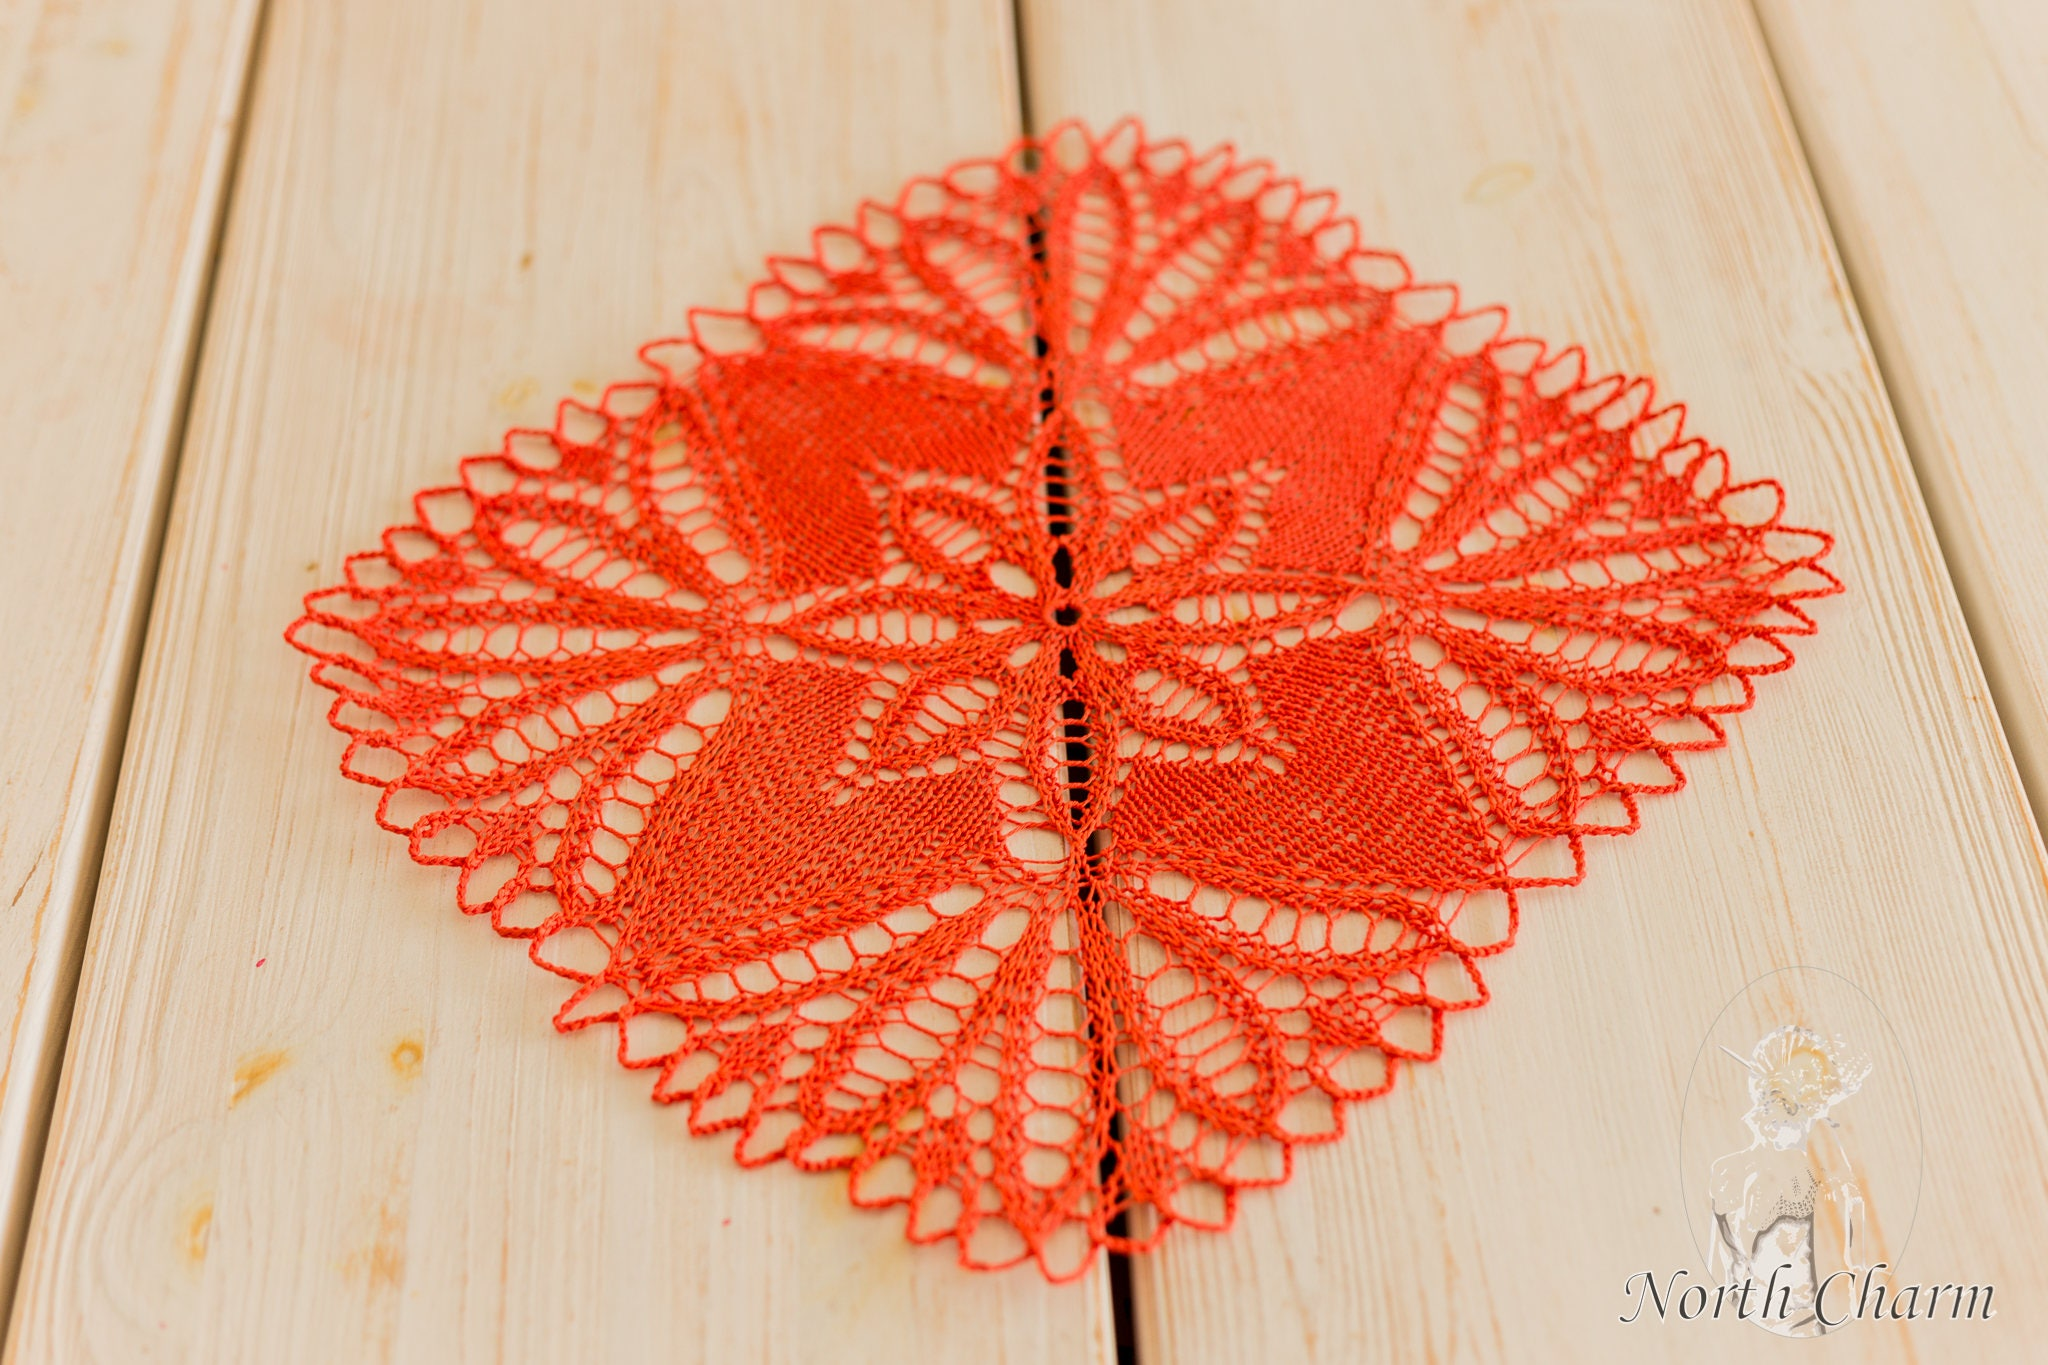 KNITTING PATTERN: Red Knitted Lace Table Topper / Knitted Table ...